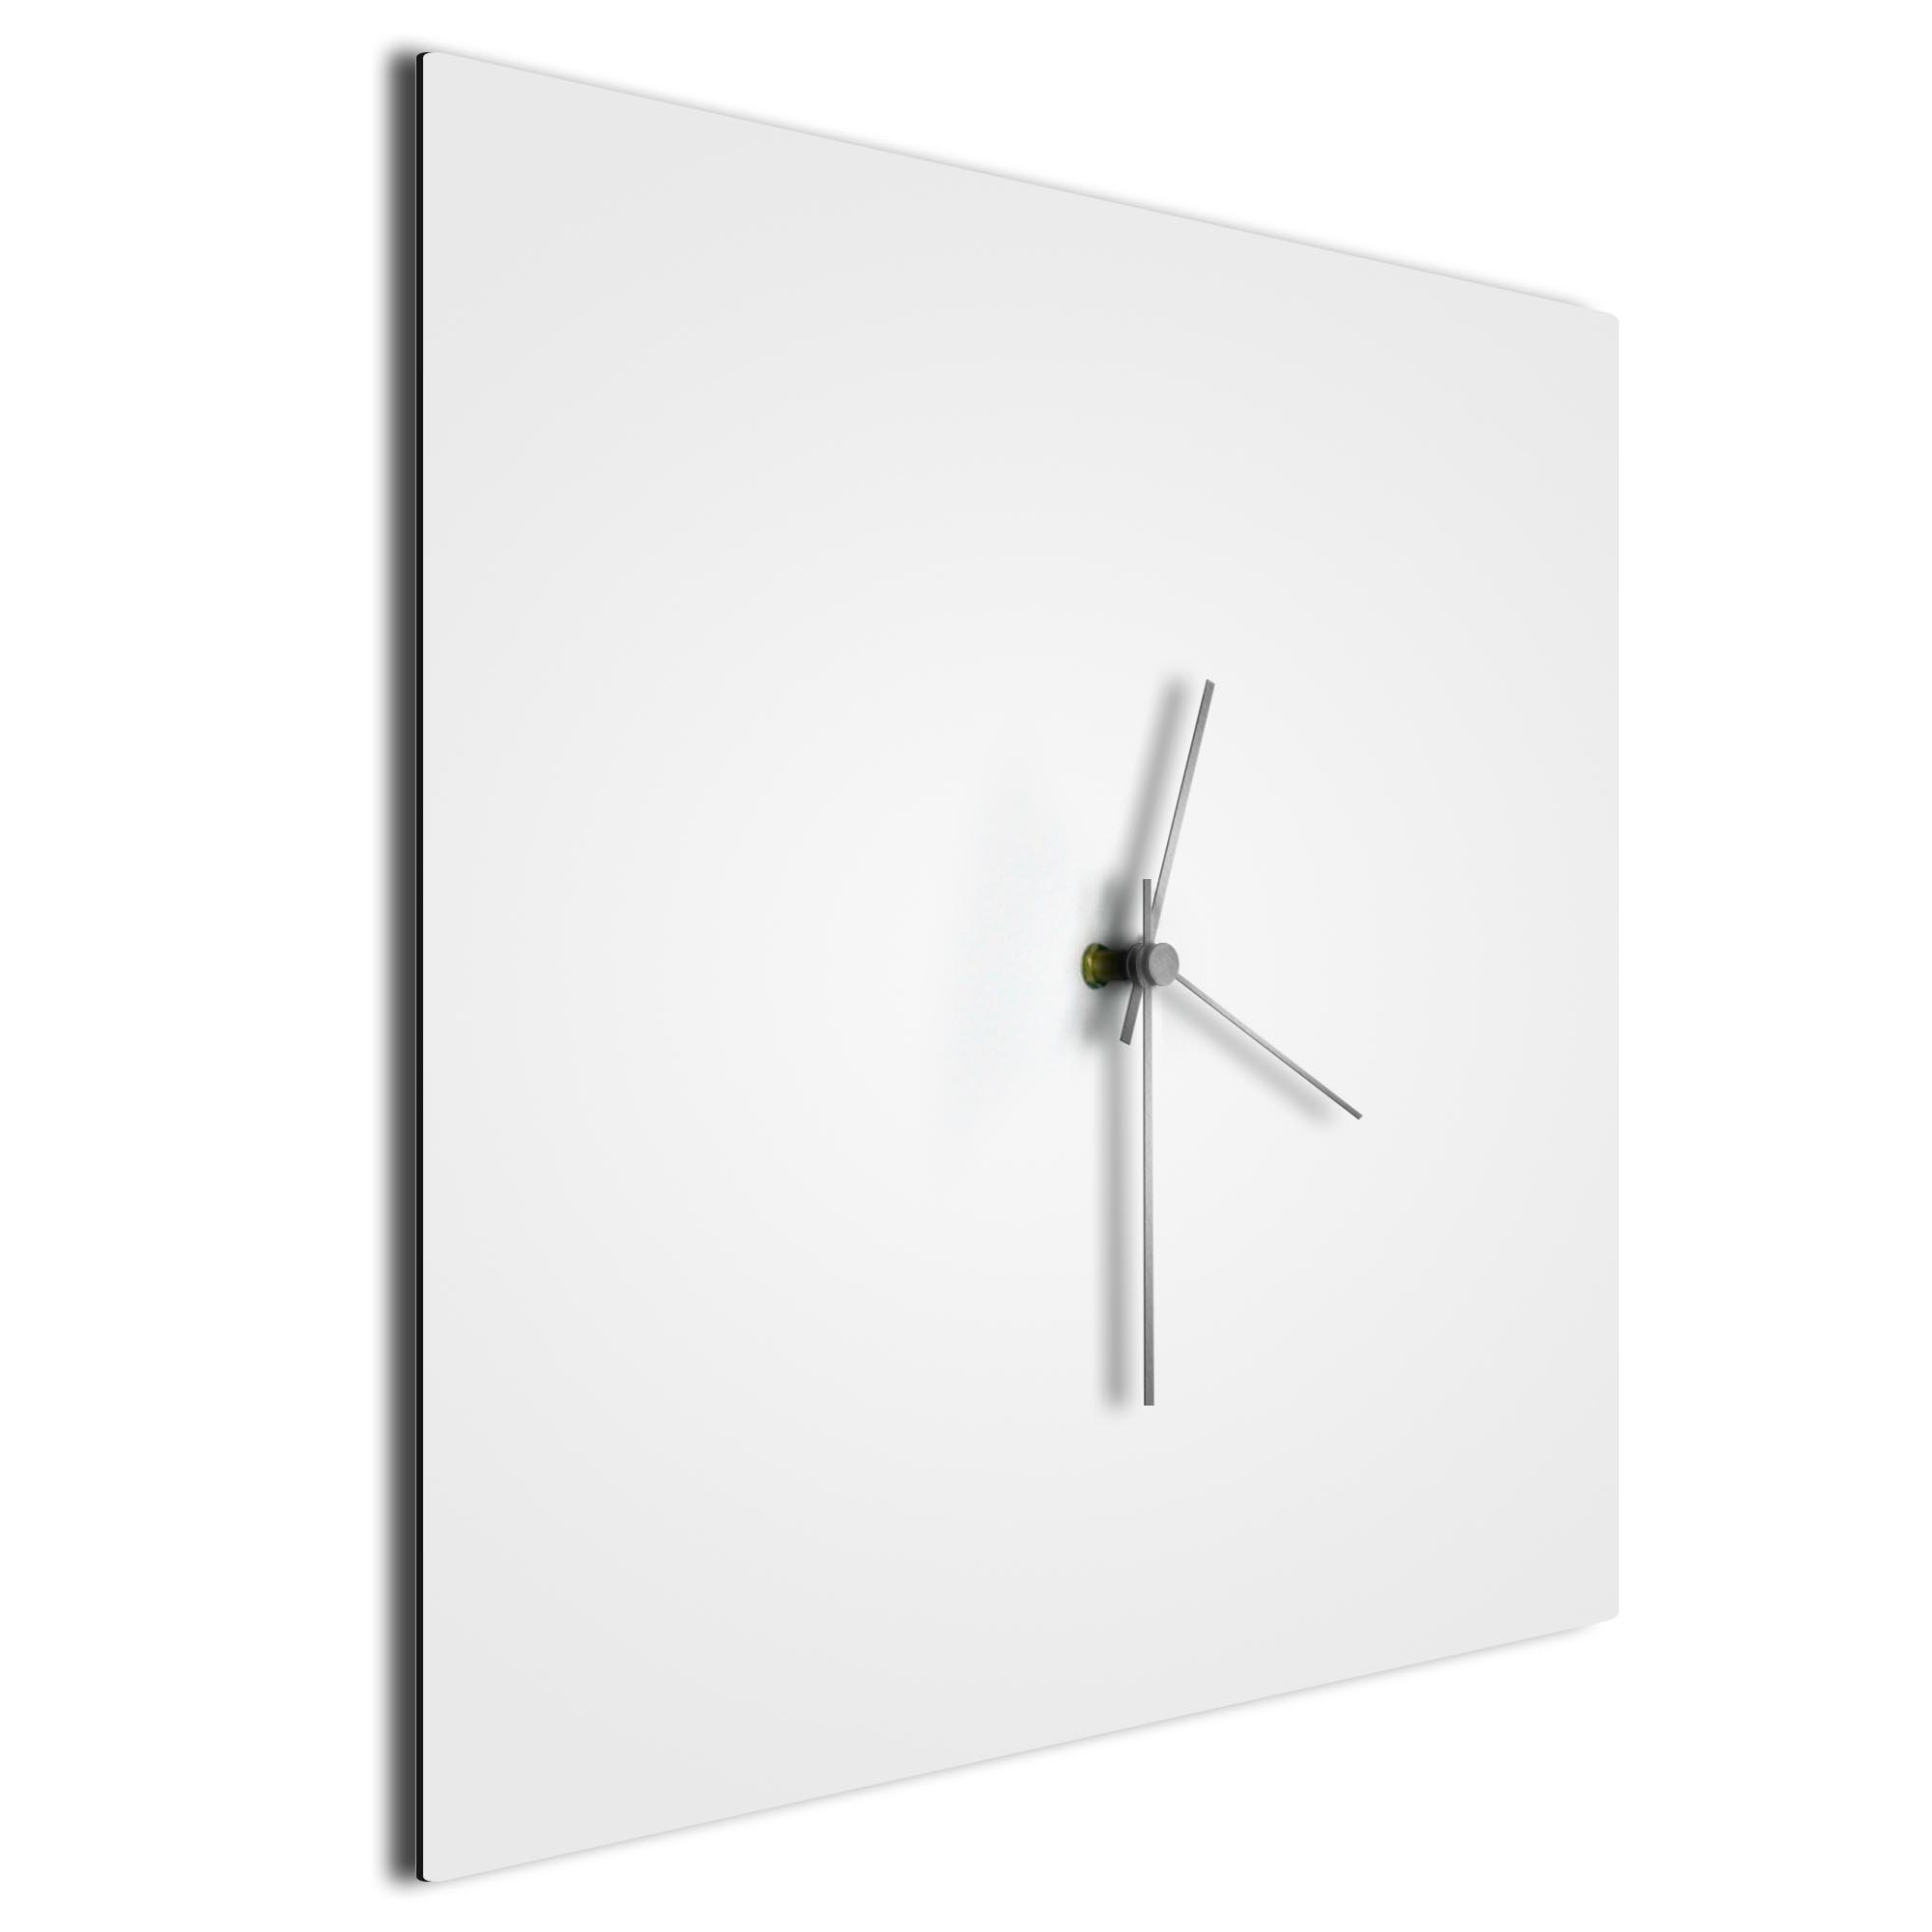 Whiteout Silver Square Clock - Image 2